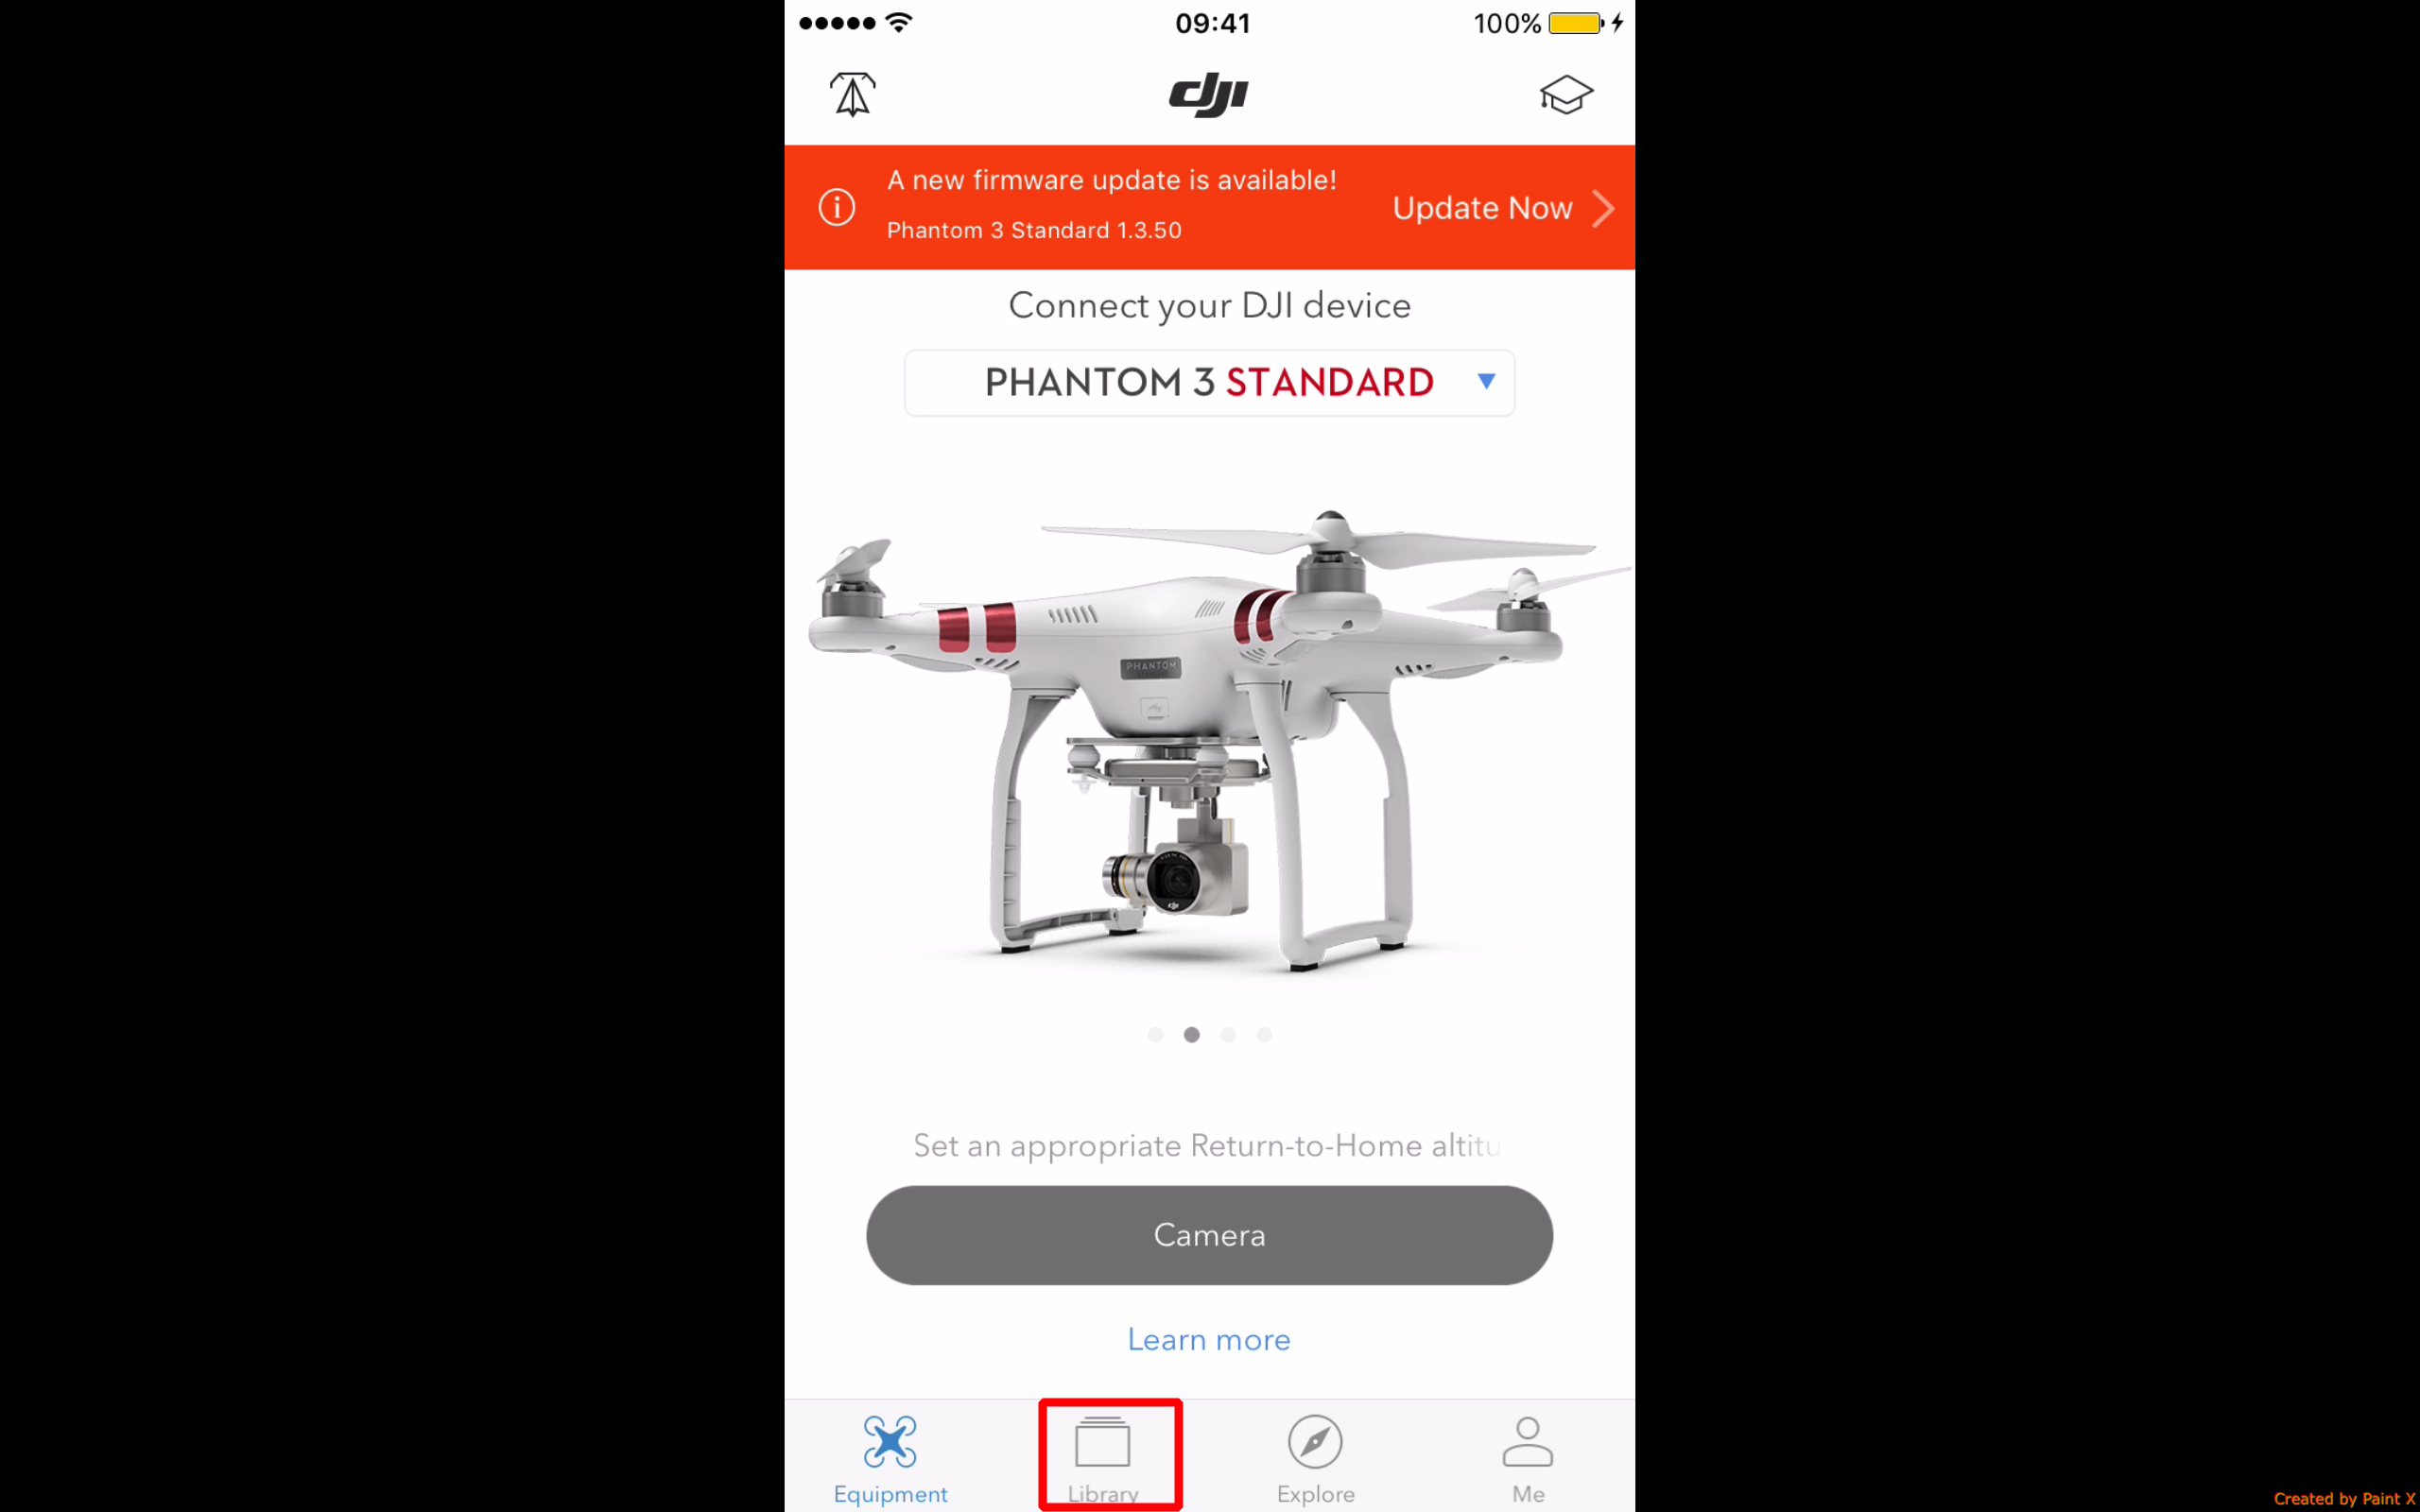 How to download videos from dji go app | Dji Go  2019-02-27